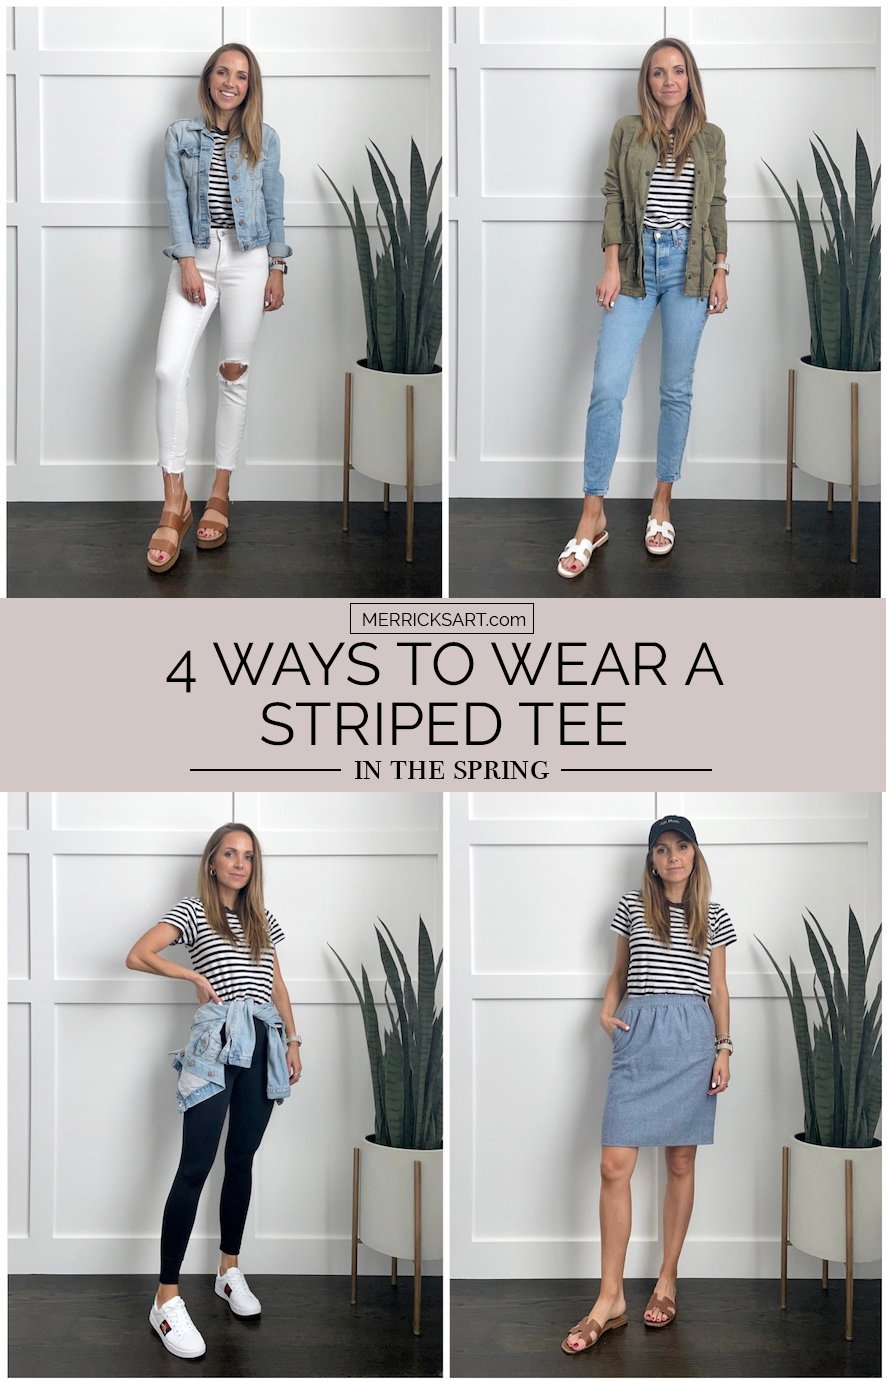 4 ways to wear striped tees